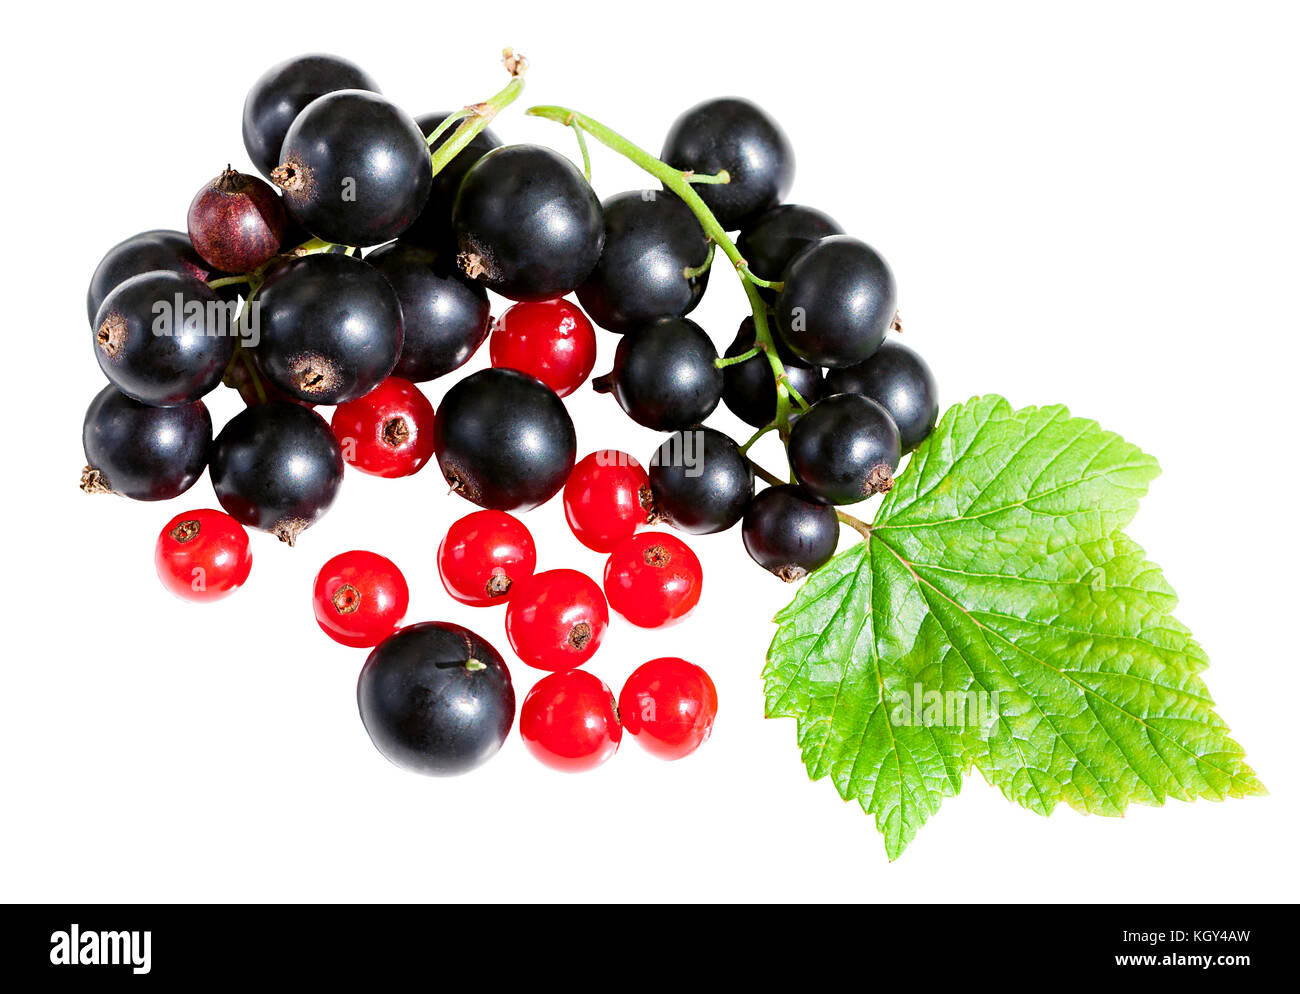 fresh berries of currant isolated on a white background. berries black currant and red currant with green leaves Stock Photo